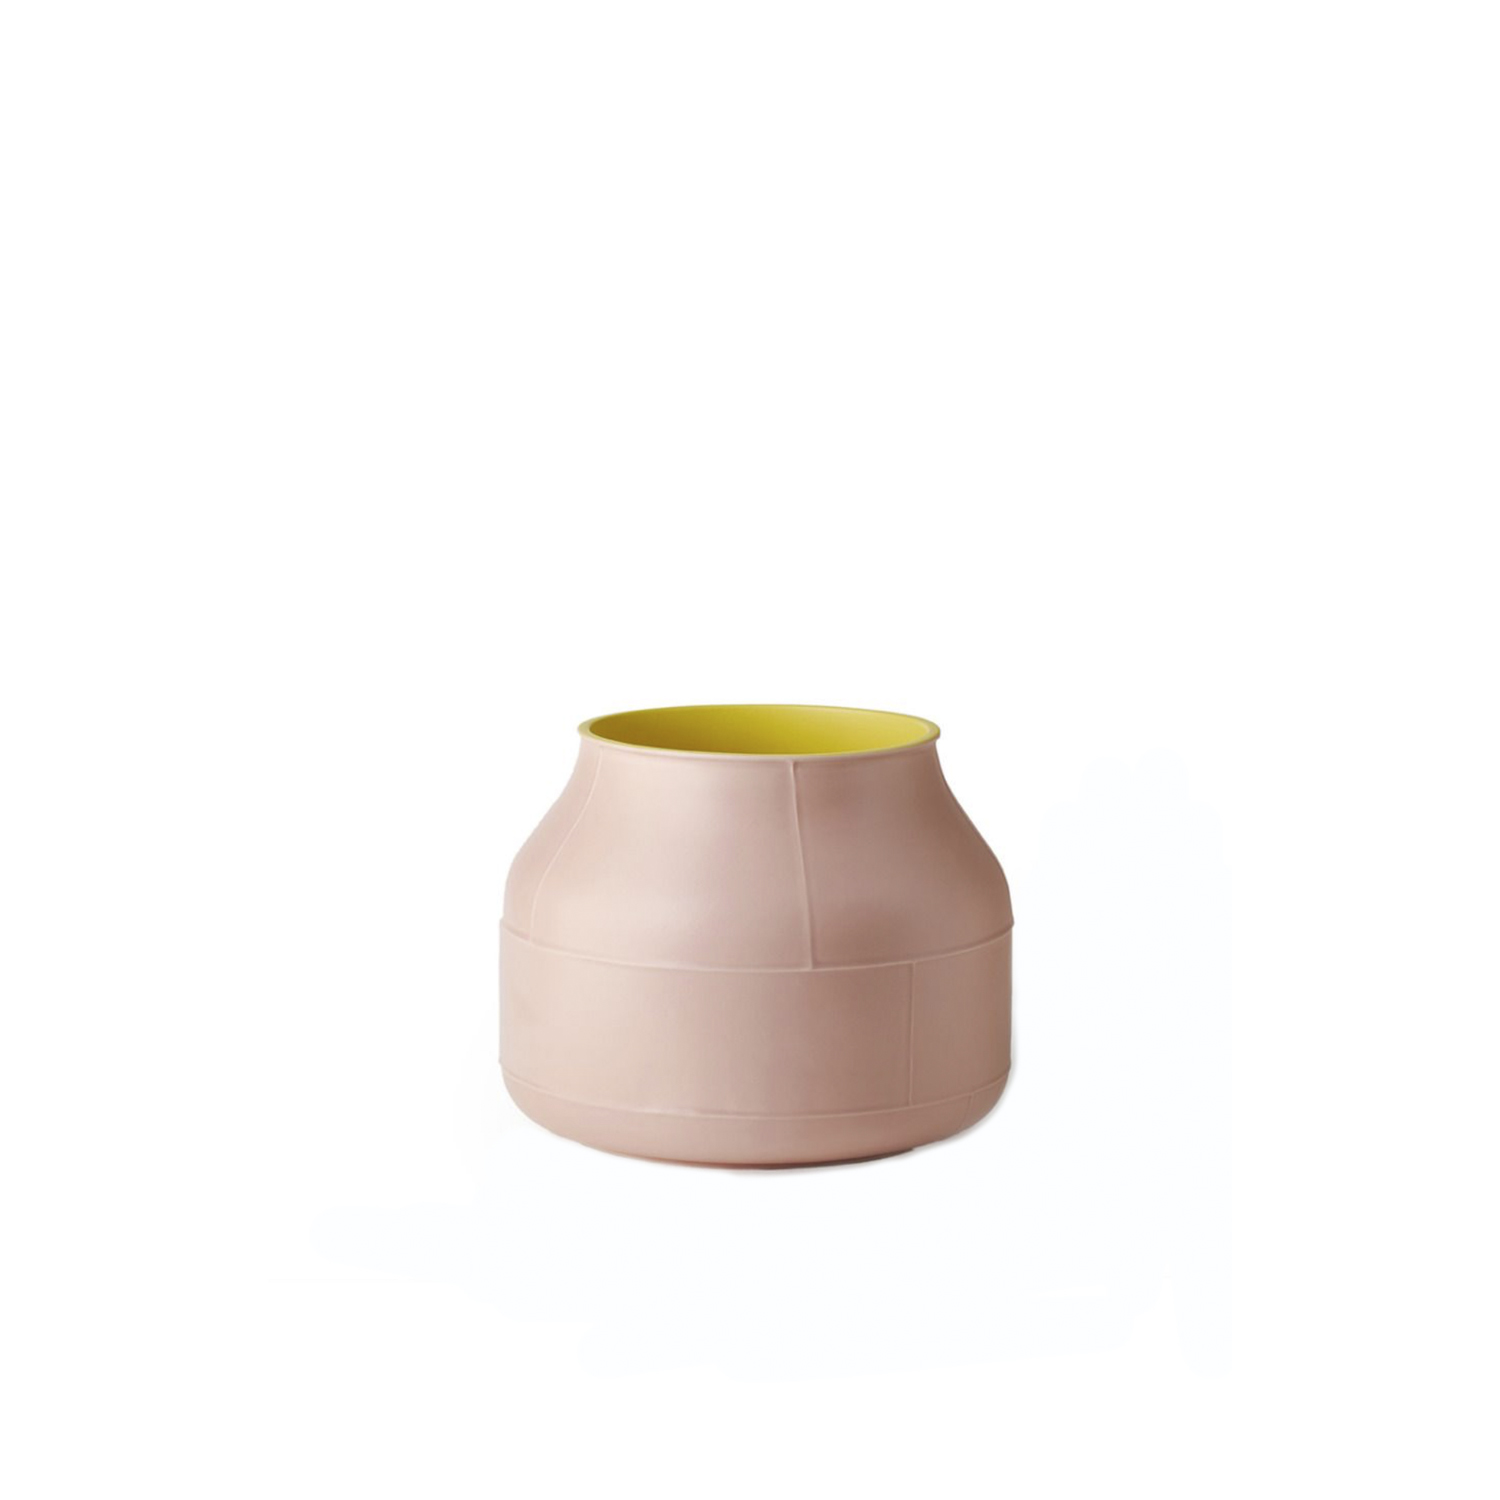 Seam Tub Vase - Tub vase. Cast in white clay. Two-tone matt glaze, yellow on the inside and pink on the outside. Part of Benjamin Hubert's 'Seam' collection, the simple and versatile design distinguishing this ceramic bowl makes it a spot-on choice to serve a variety of different purposes. The delicate and linear details running perpendicularly its sinuous outer surface are obtained through the mould-casting process to achieve a subtle yet superb textural and aesthetic effect. This piece was showcased at the 2019 Milan Design Week.